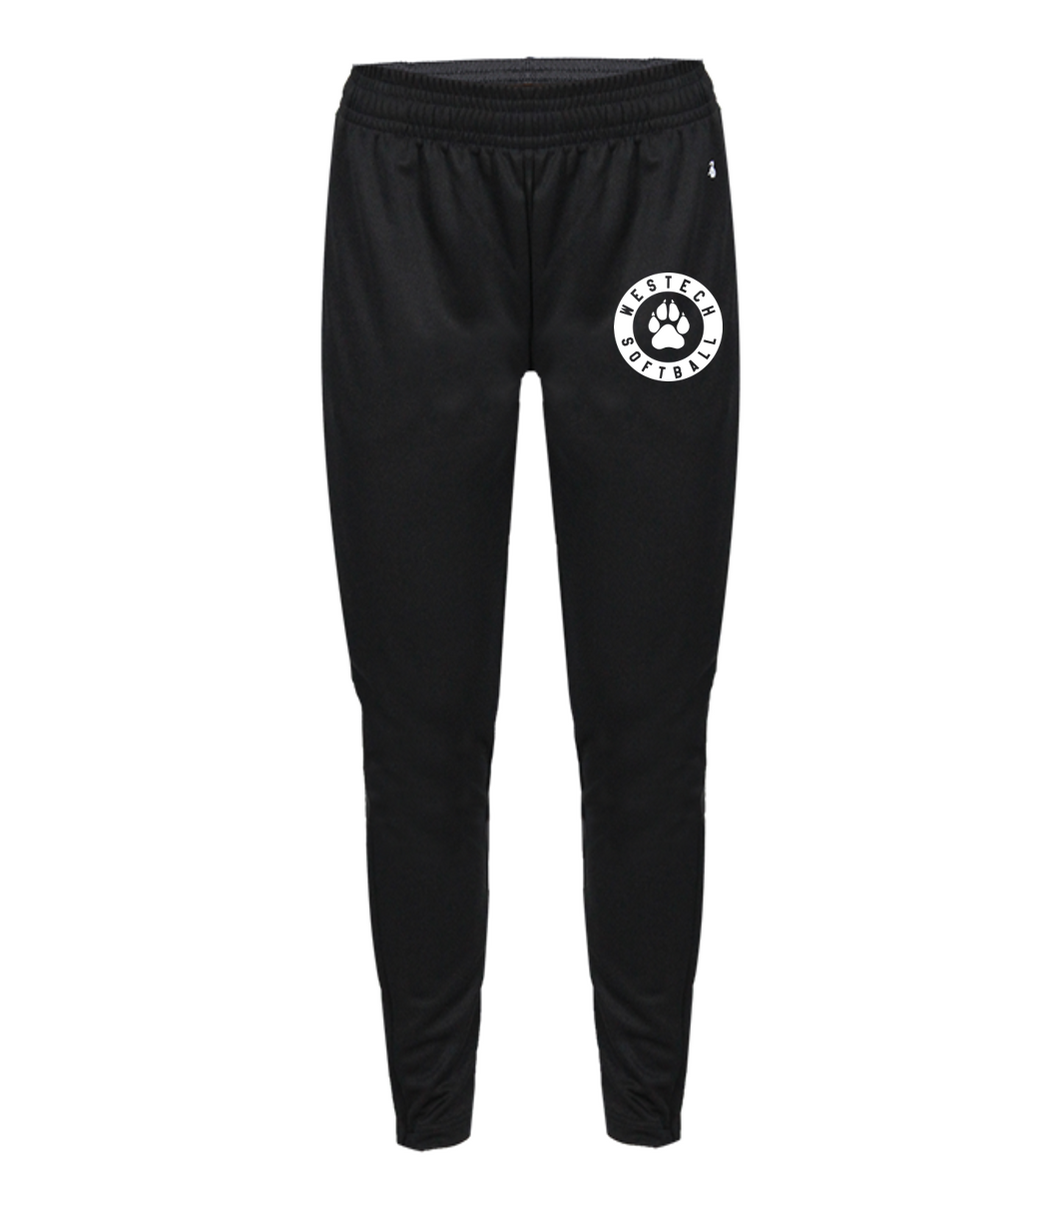 LADIES TRAINER PANT - WESTECH SOFTBALL